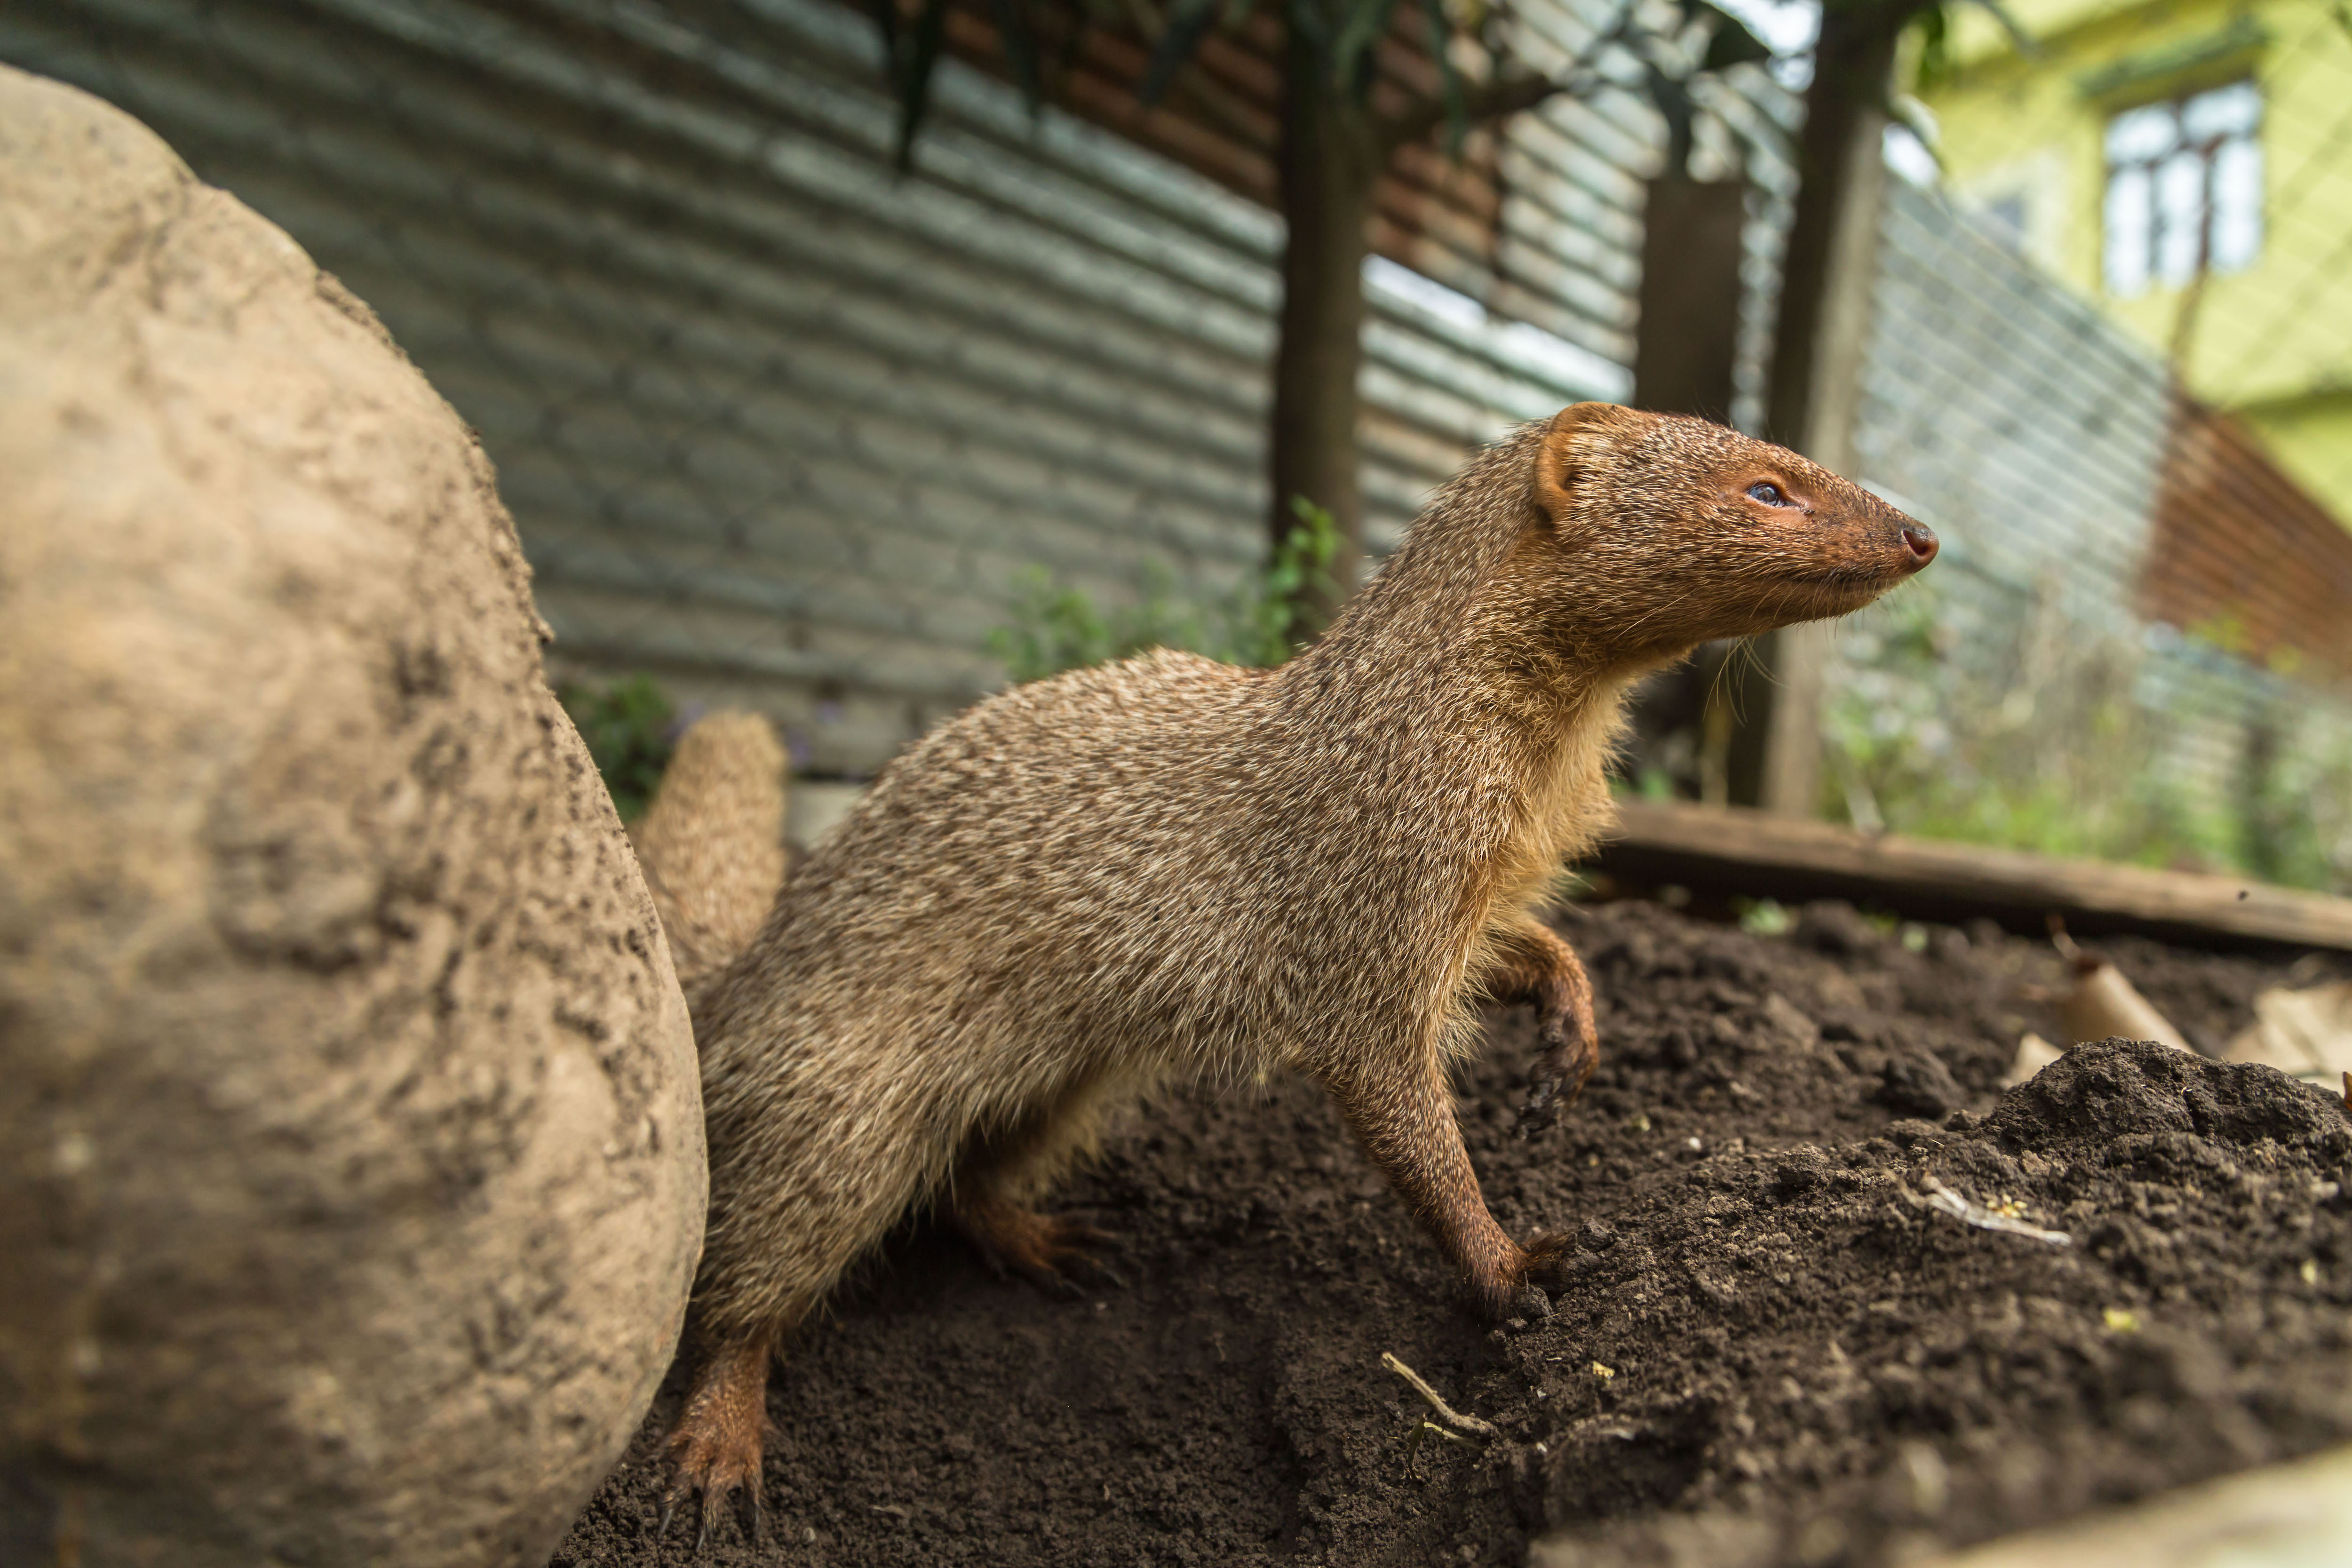 RAJESH THAPLIYAL photographed this mongoose in the garden of his house in Rishikesh, Uttarakhand.